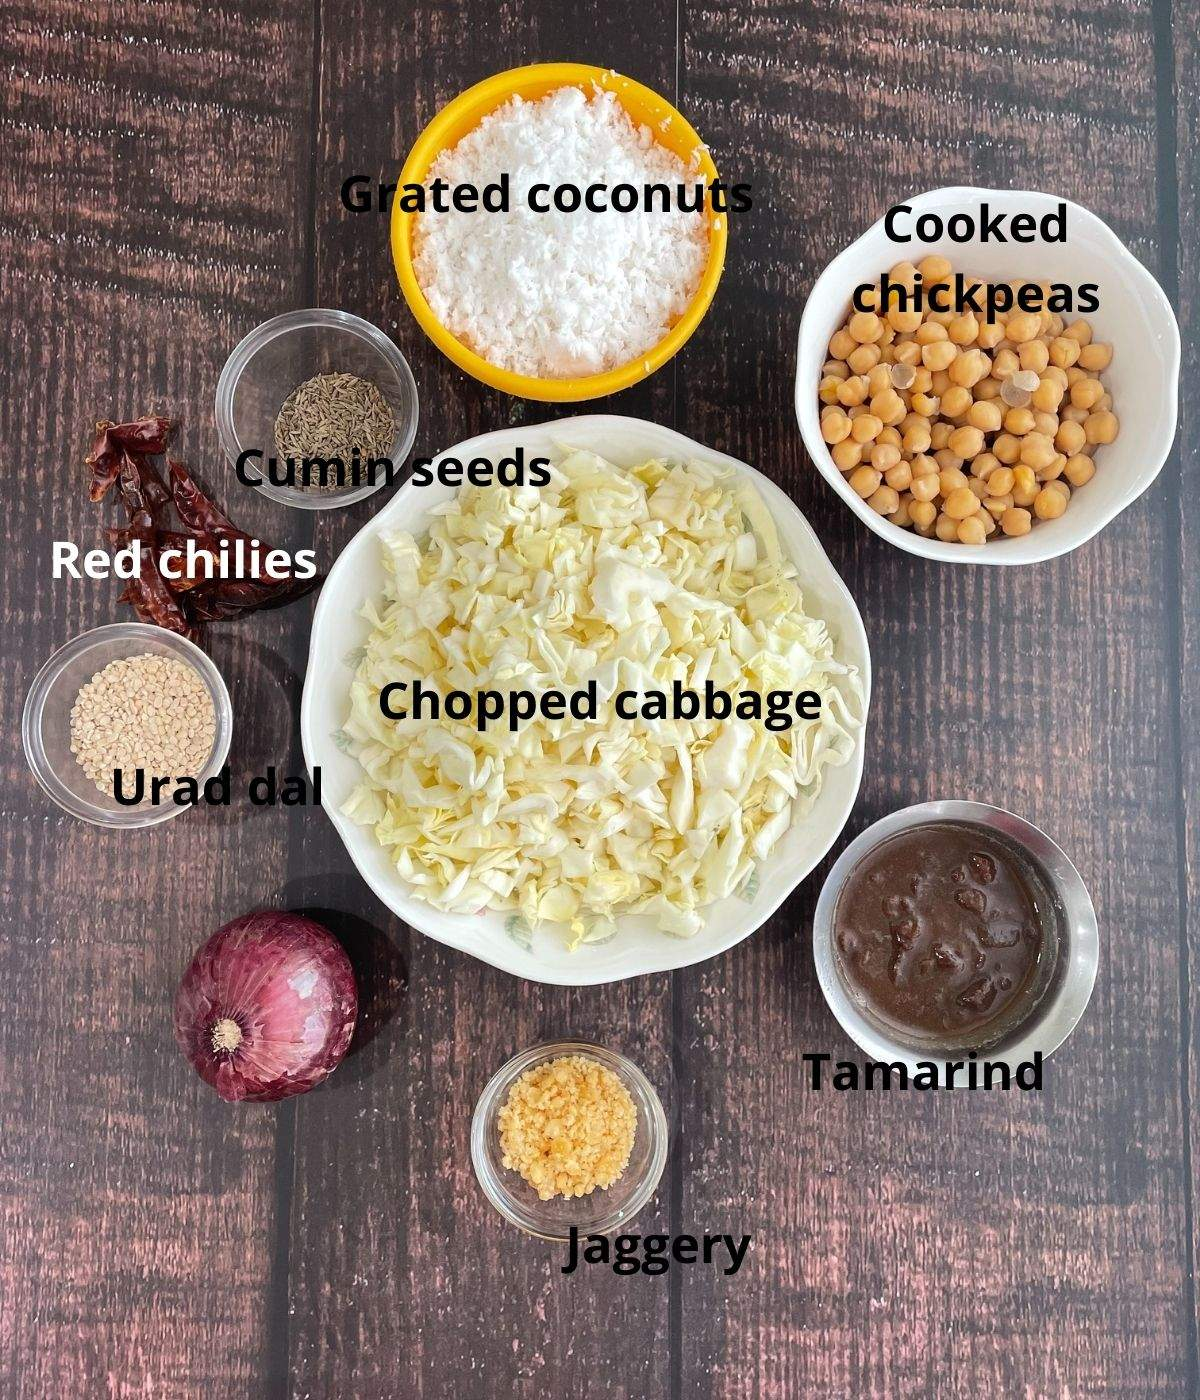 A brown surface is filled with gassi ingredients like cabbage, onion, coconuts and spices